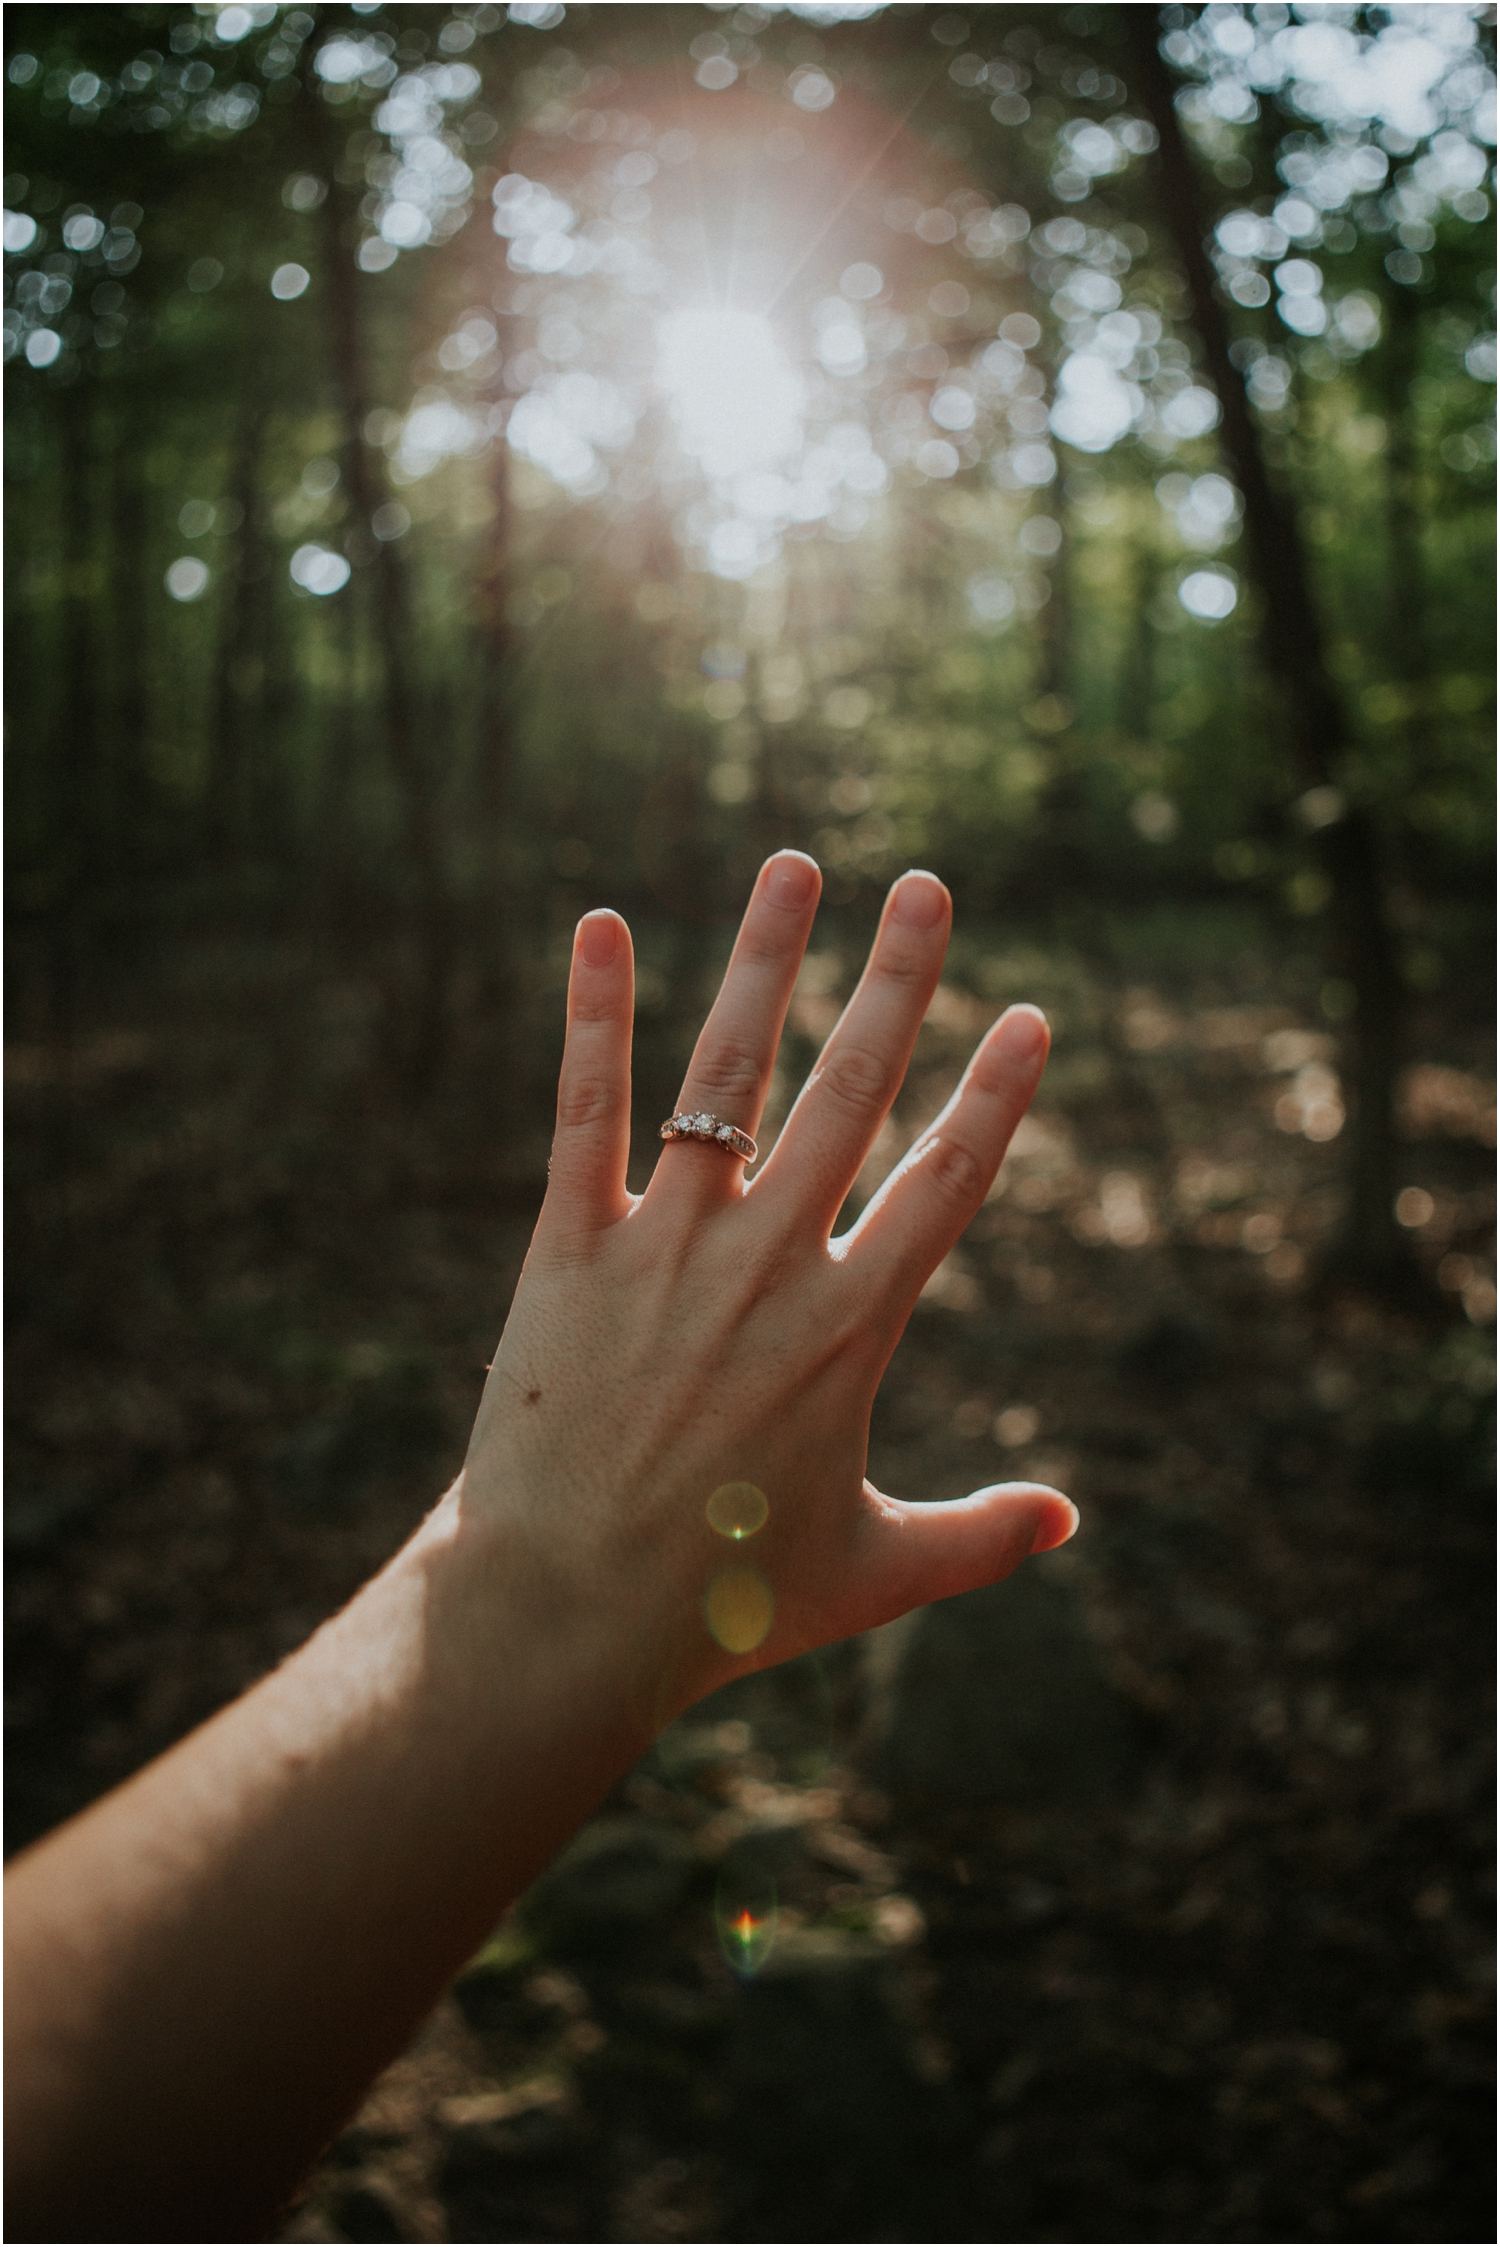 katy-sergent-photography-proposal-appalachian-trail-annapolis-rocks-adventurous-wedding-couples-intimate-elopement-hiking-backpacking-camping-photographer-johnson-city-tn-northeast-tennessee_0019.jpg